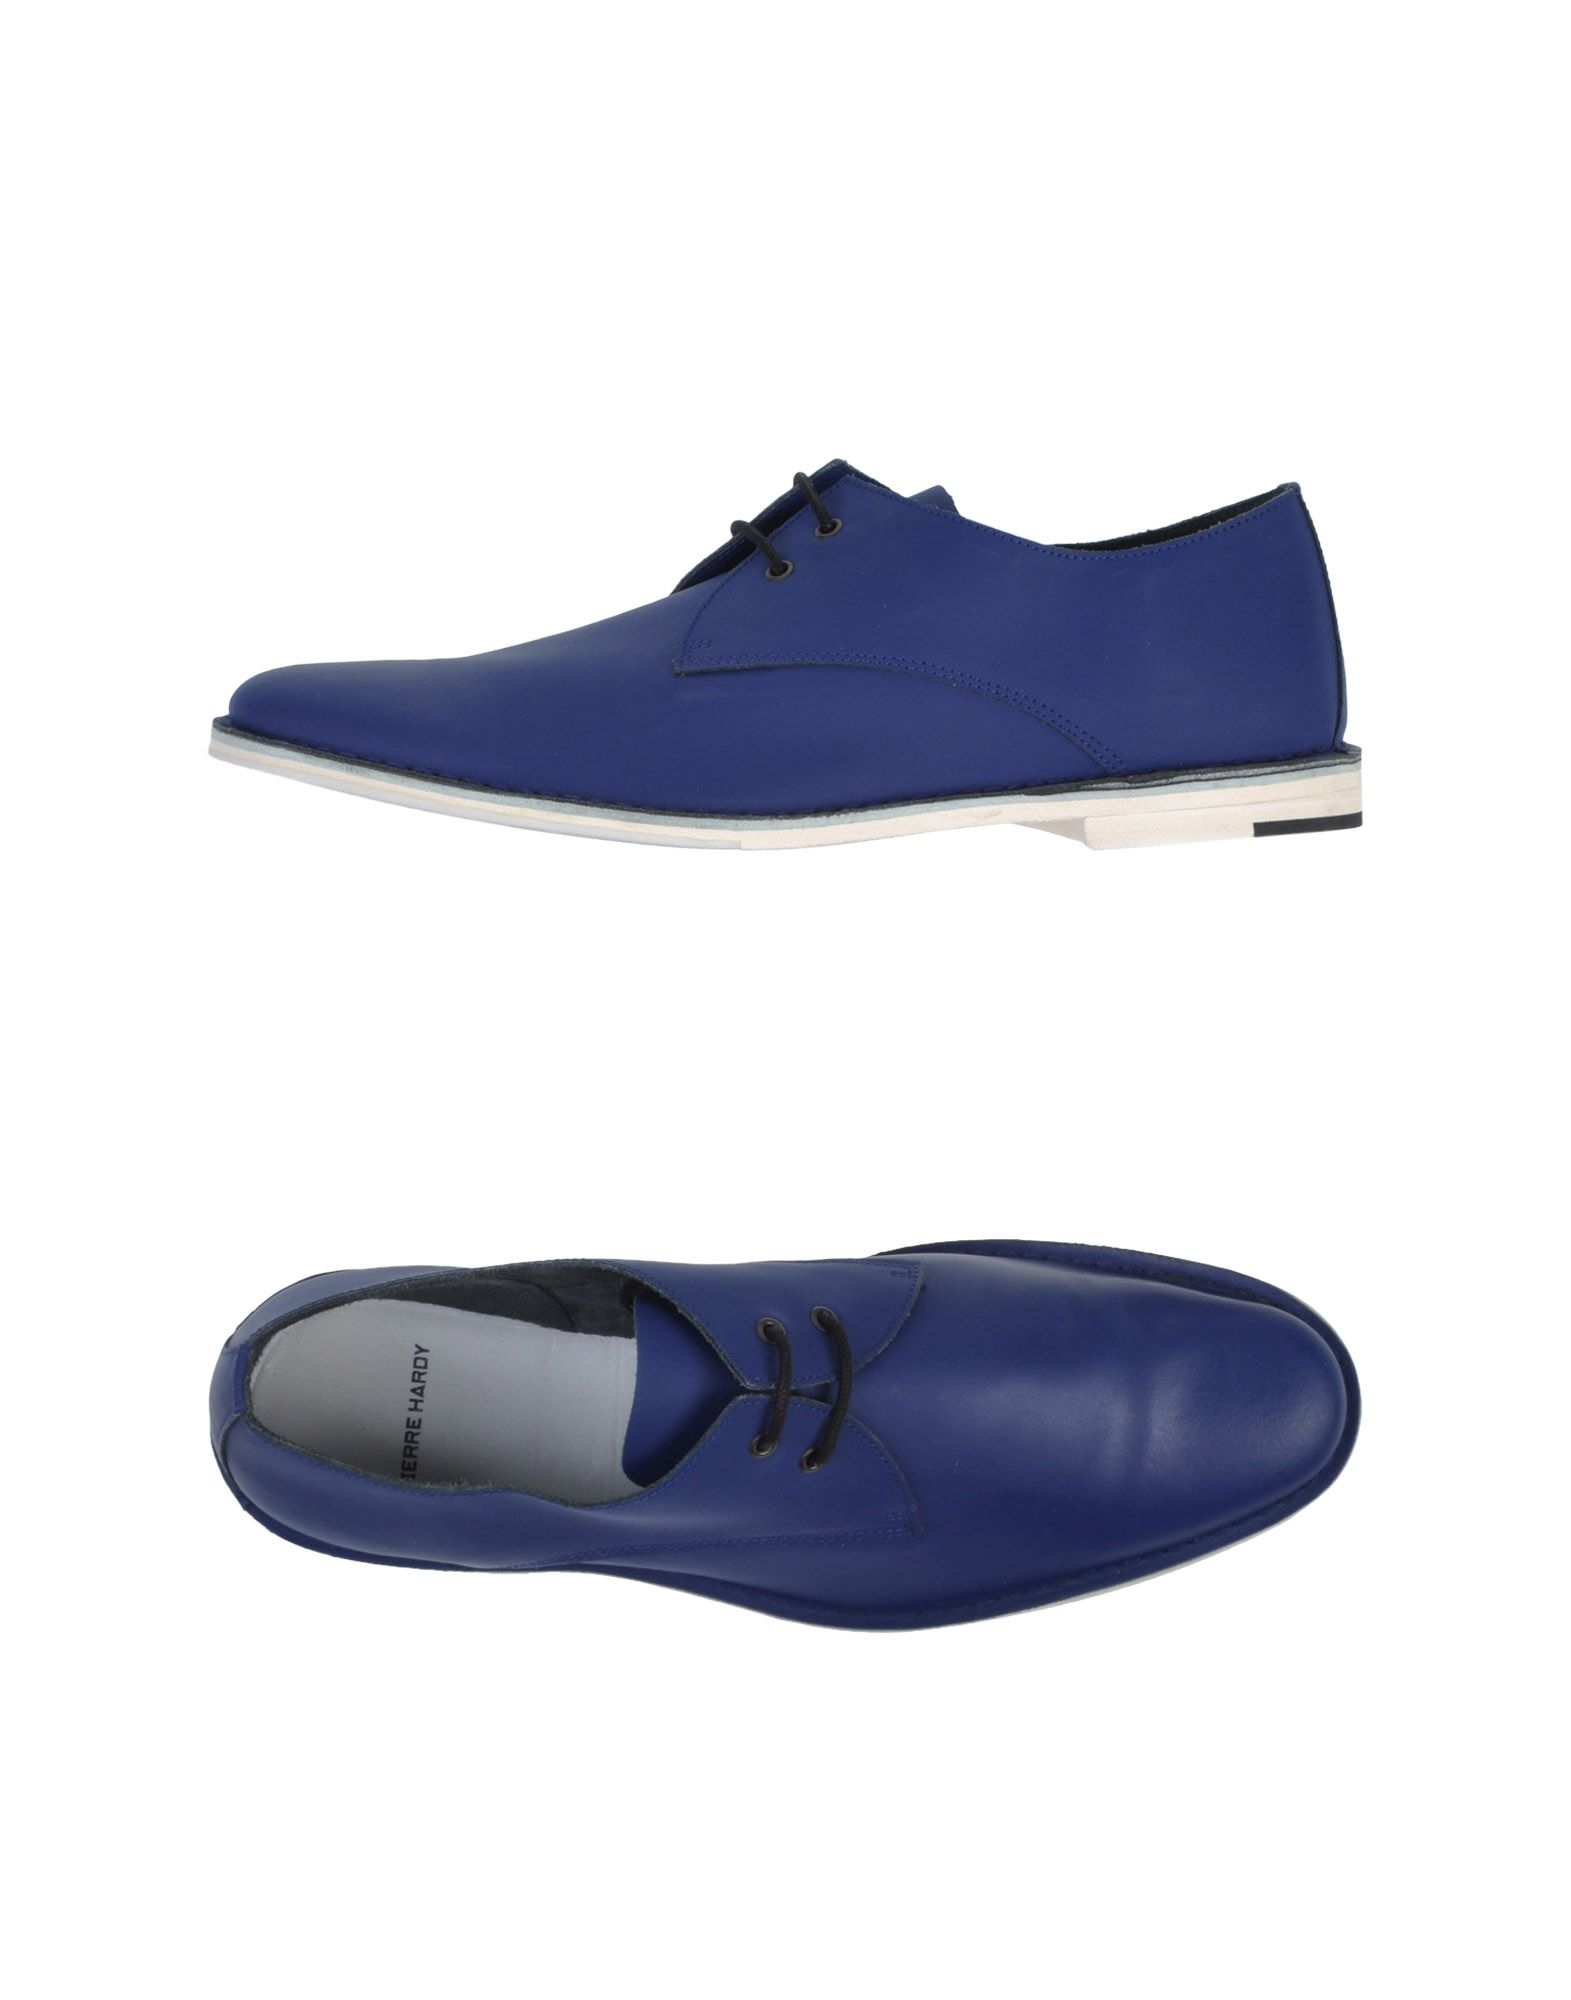 pierre hardy lace up shoes in blue for men dark blue save 59 lyst. Black Bedroom Furniture Sets. Home Design Ideas